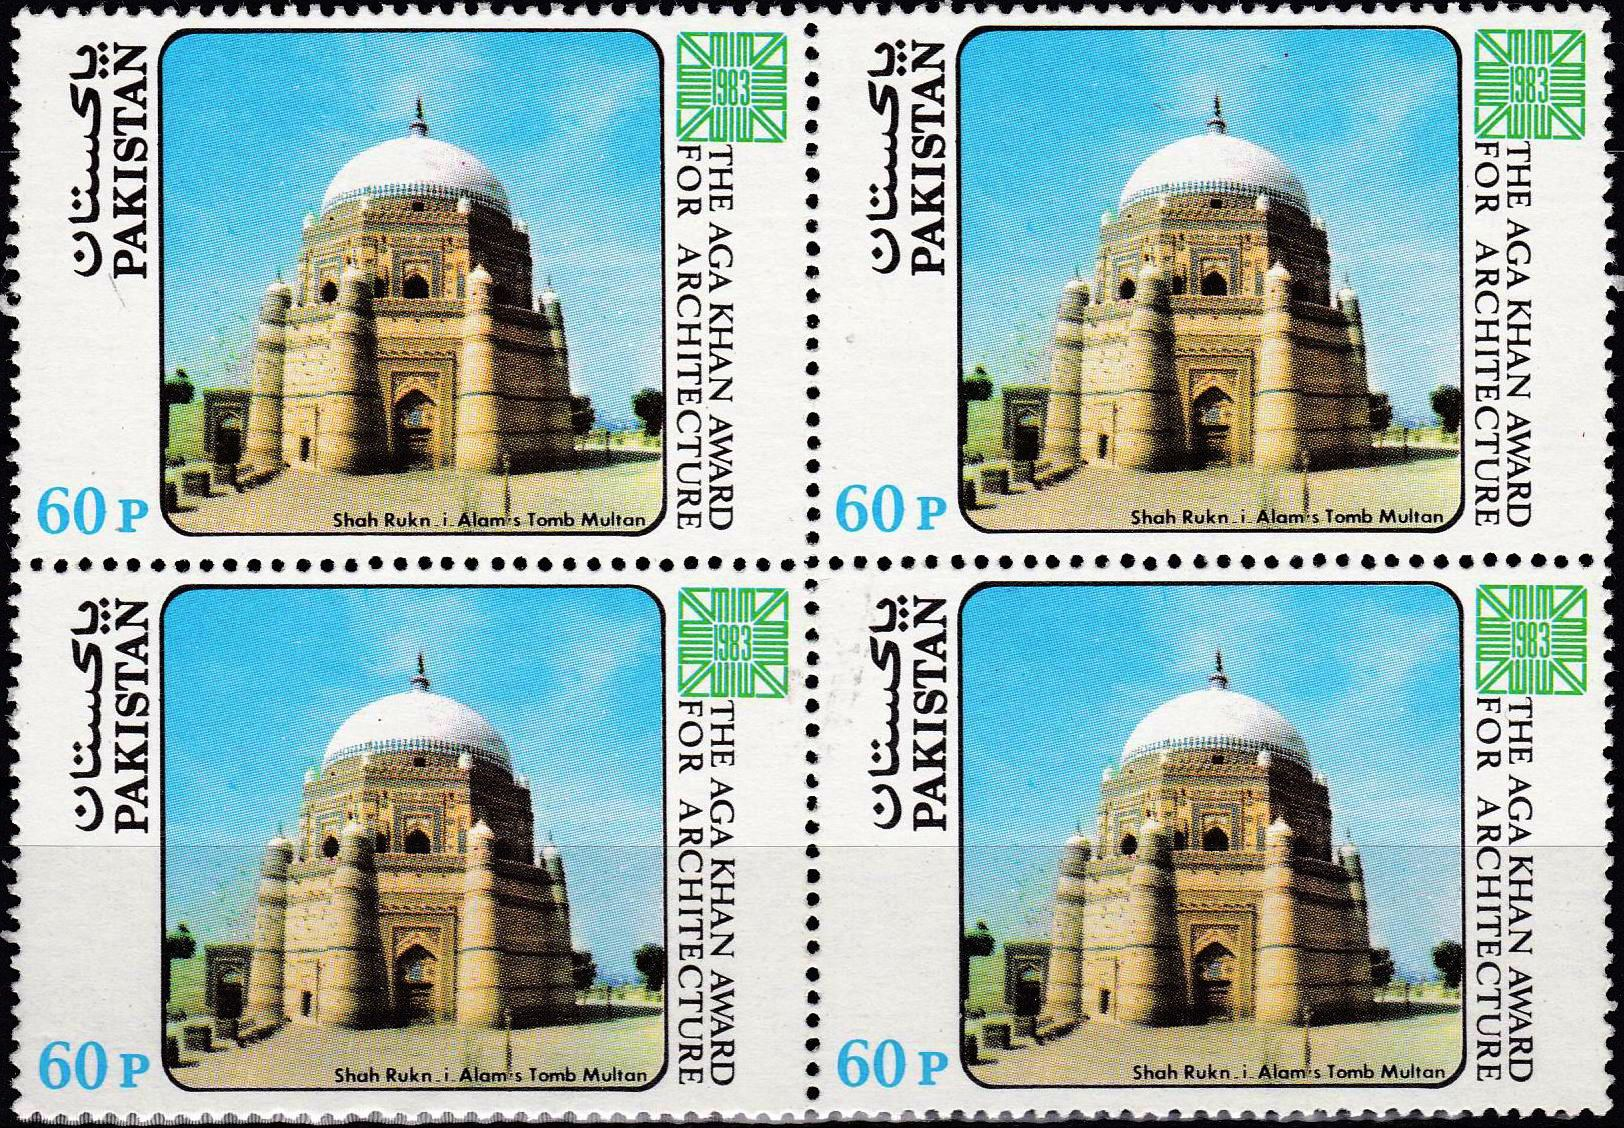 Pakistan Stamps 1984 Aga Khan Award for Architecture